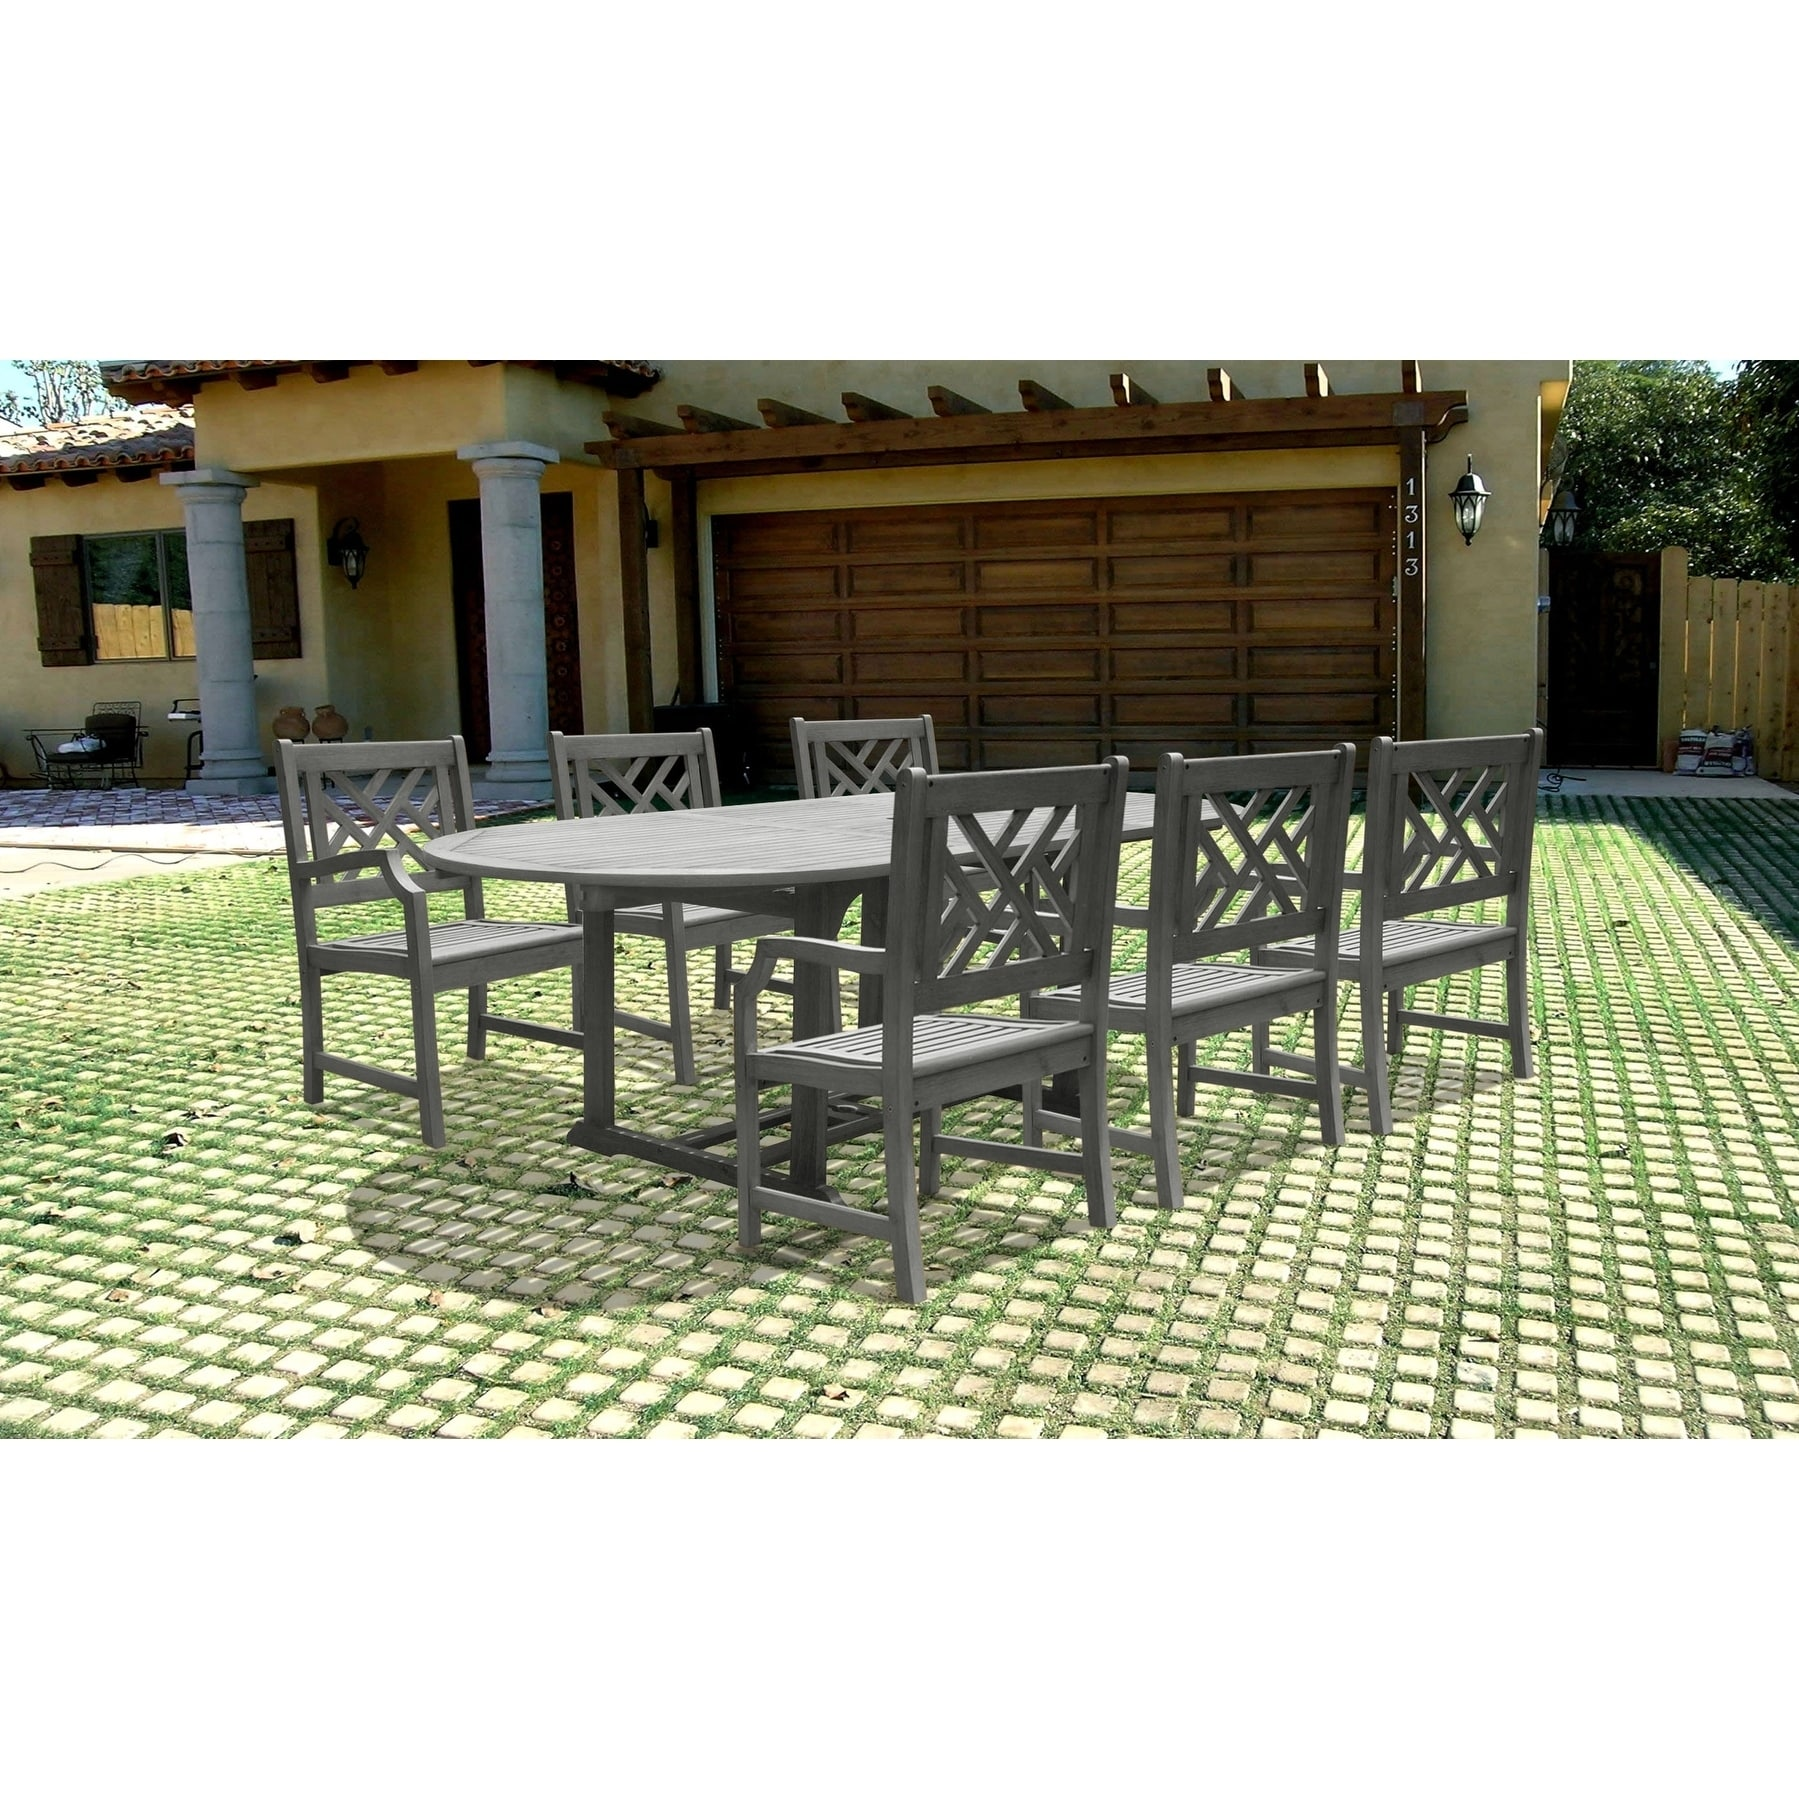 Vifah Renaissance Oval Extension Table and Armchair Outdoor Dining Set (Outdoor Furniture), Brown, Patio Furniture (Wood)